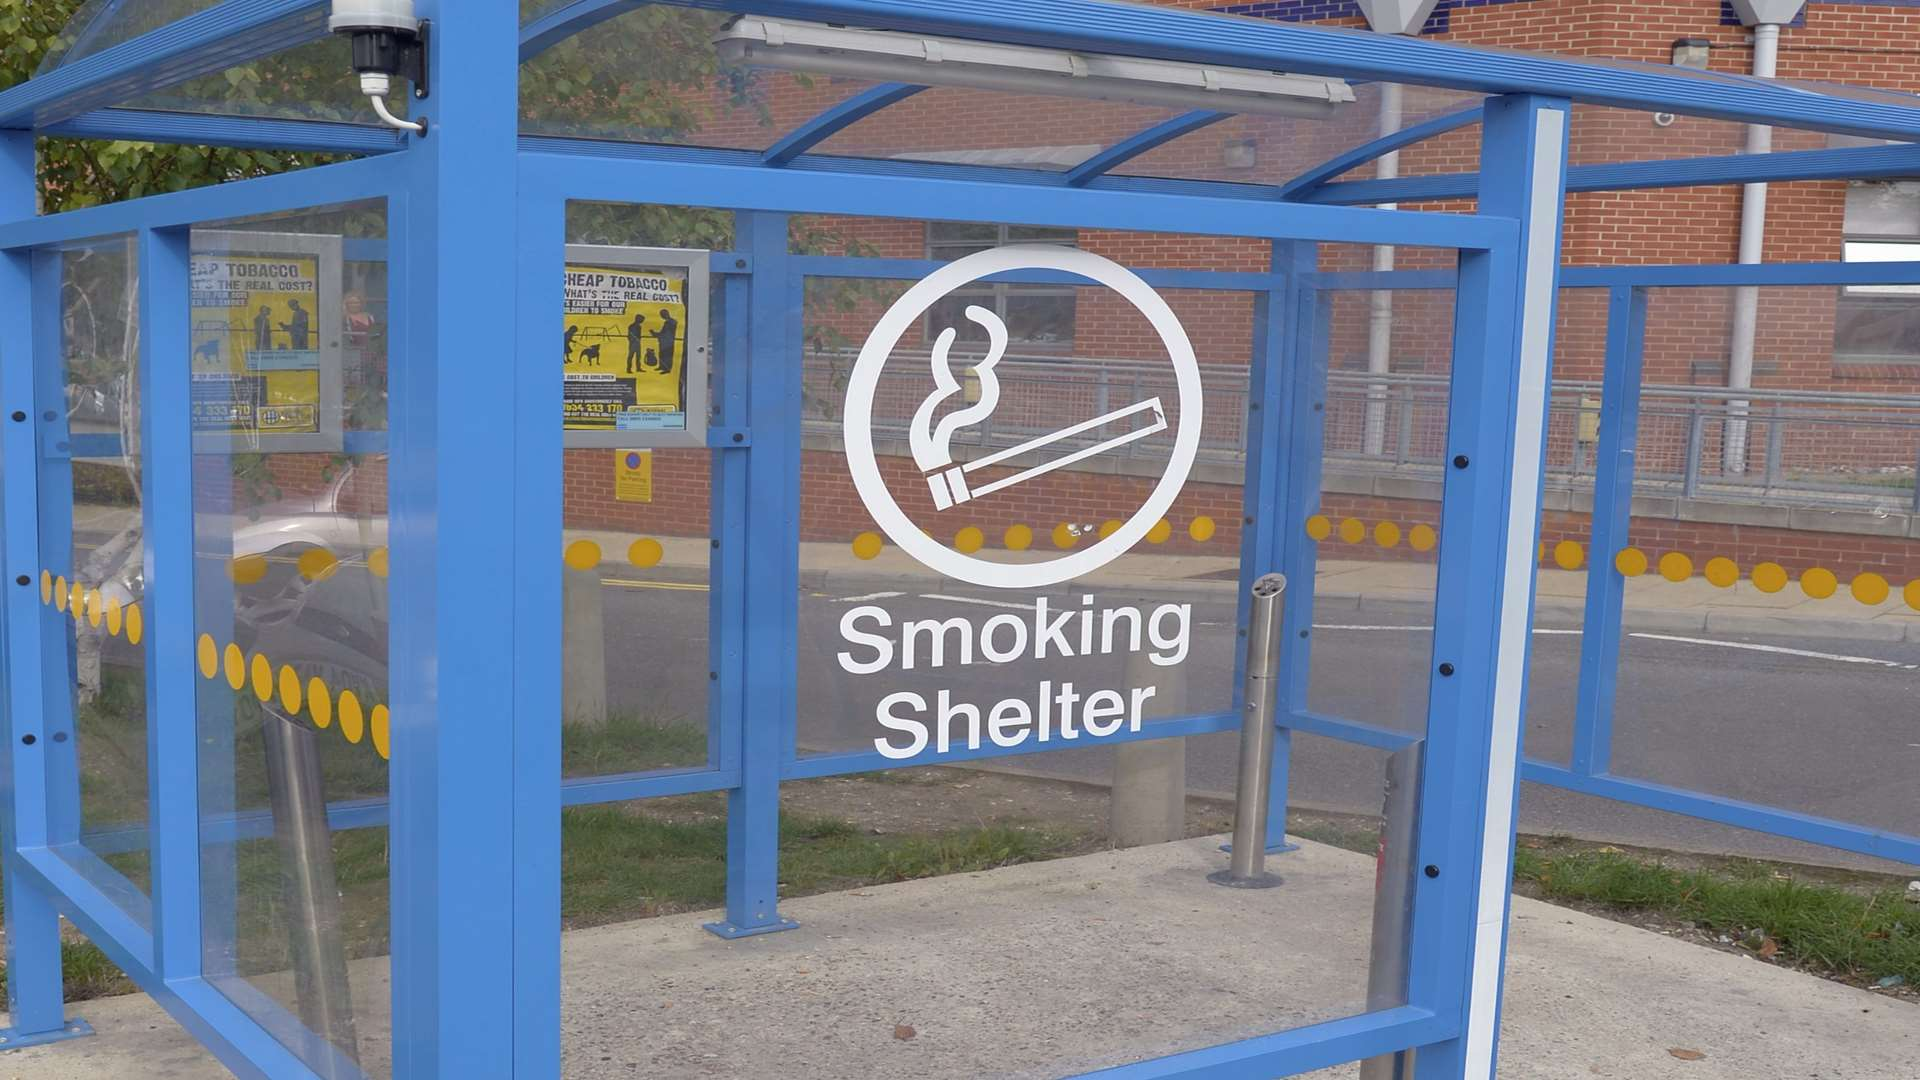 Medway Maritime Hospital site is going smokefree in October